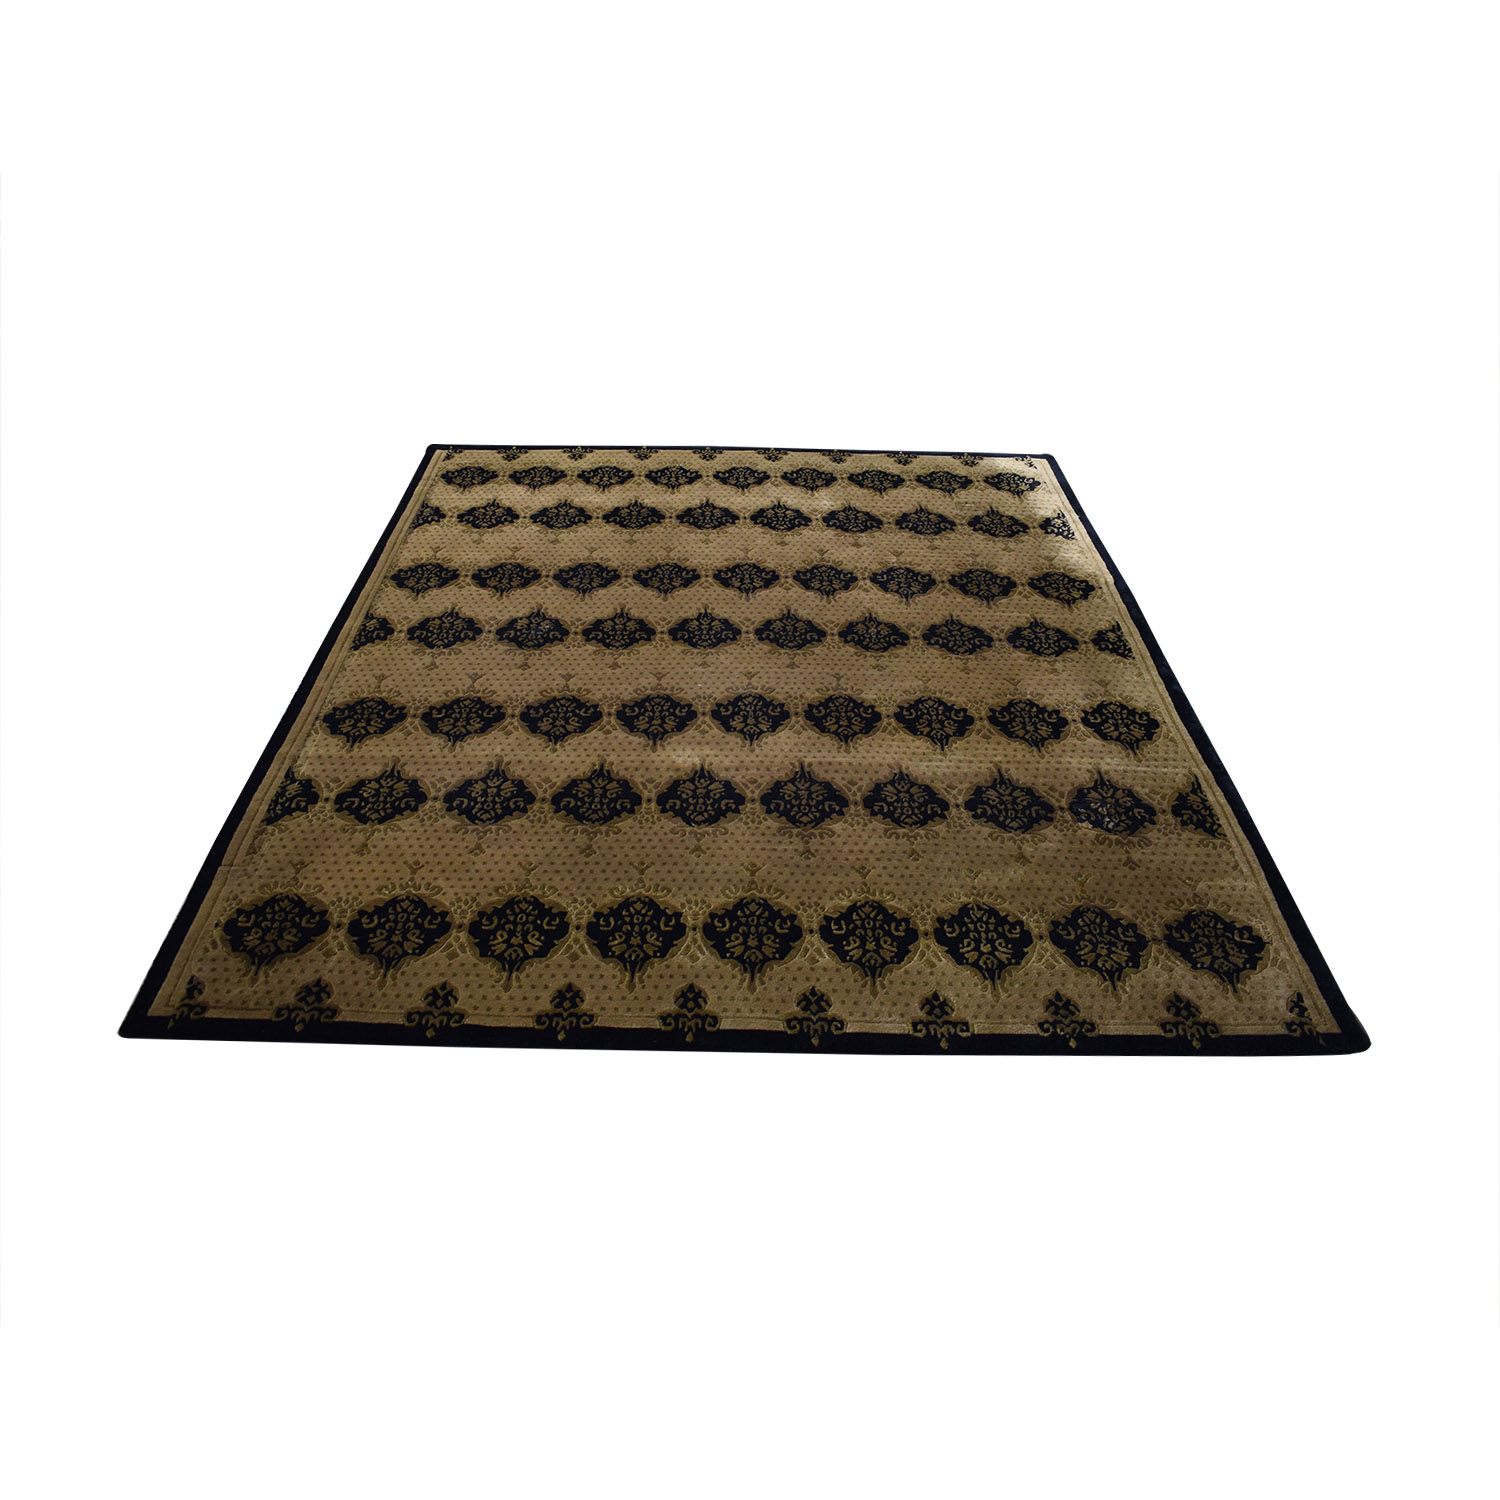 ABC Carpet & Home ABC Carpet & Home  Wool Rug nj